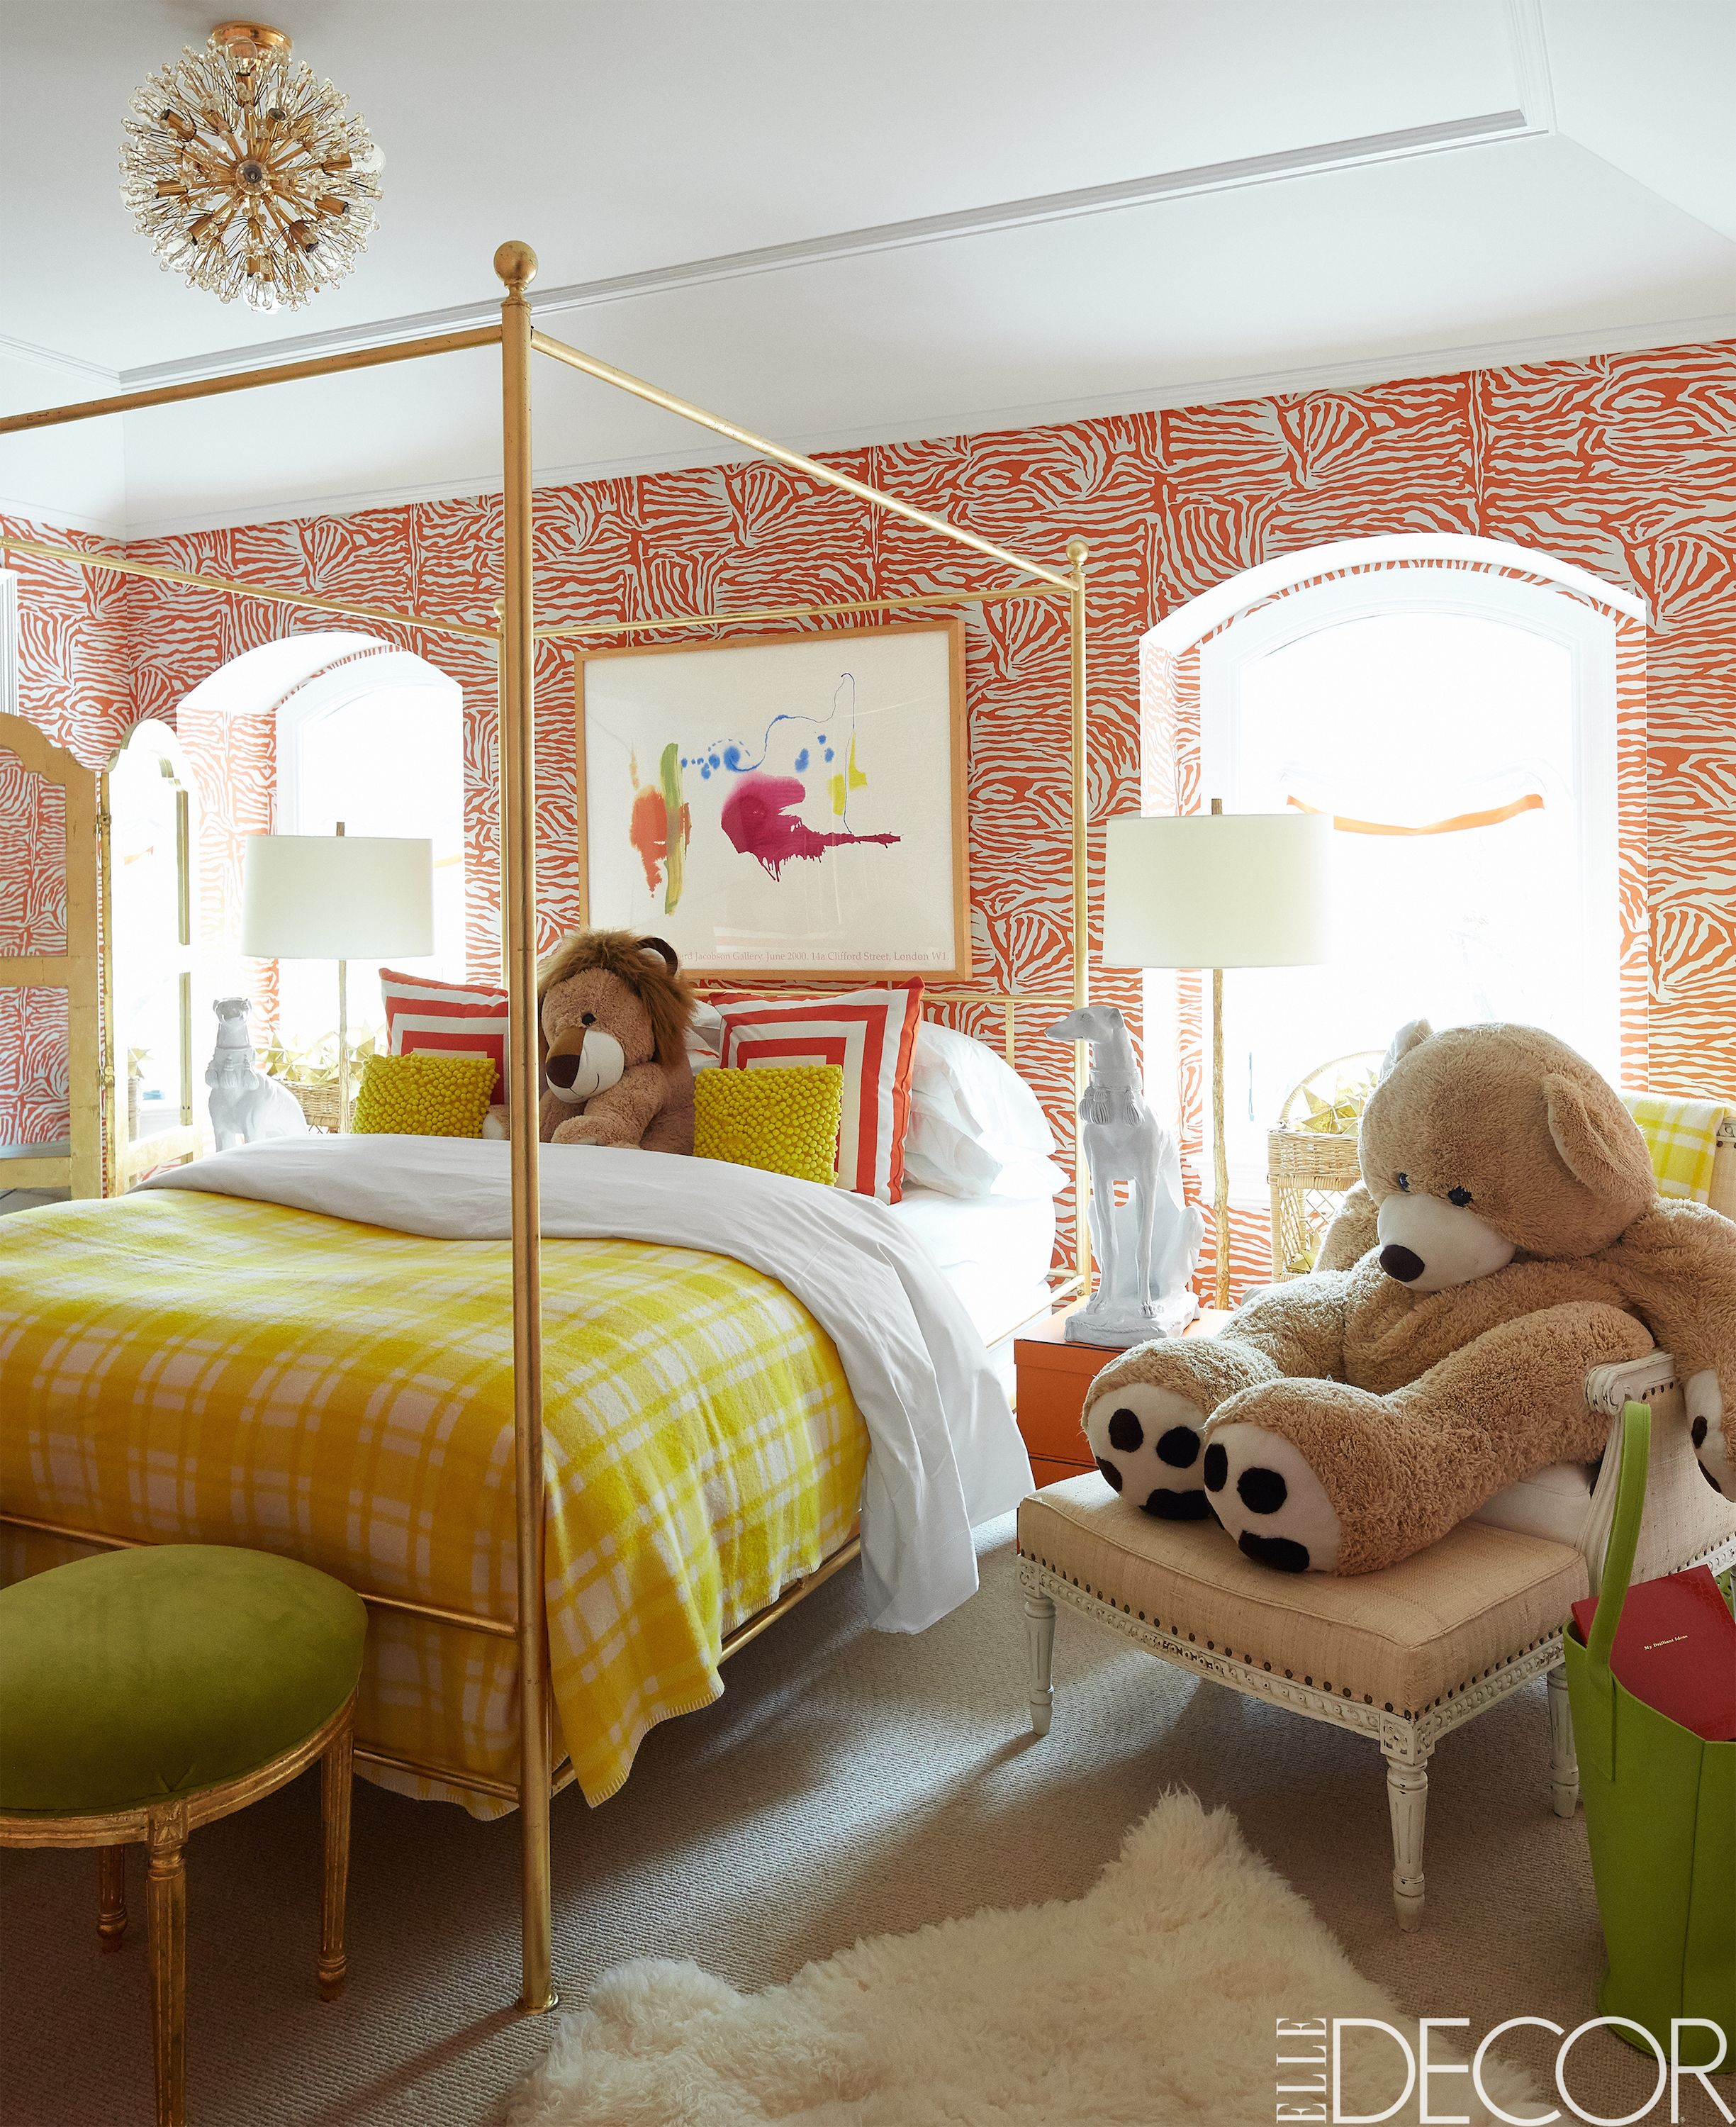 Pictures Of Girls Bedrooms 10 Girls Bedroom Decorating Ideas  Creative Girls Room Decor Tips